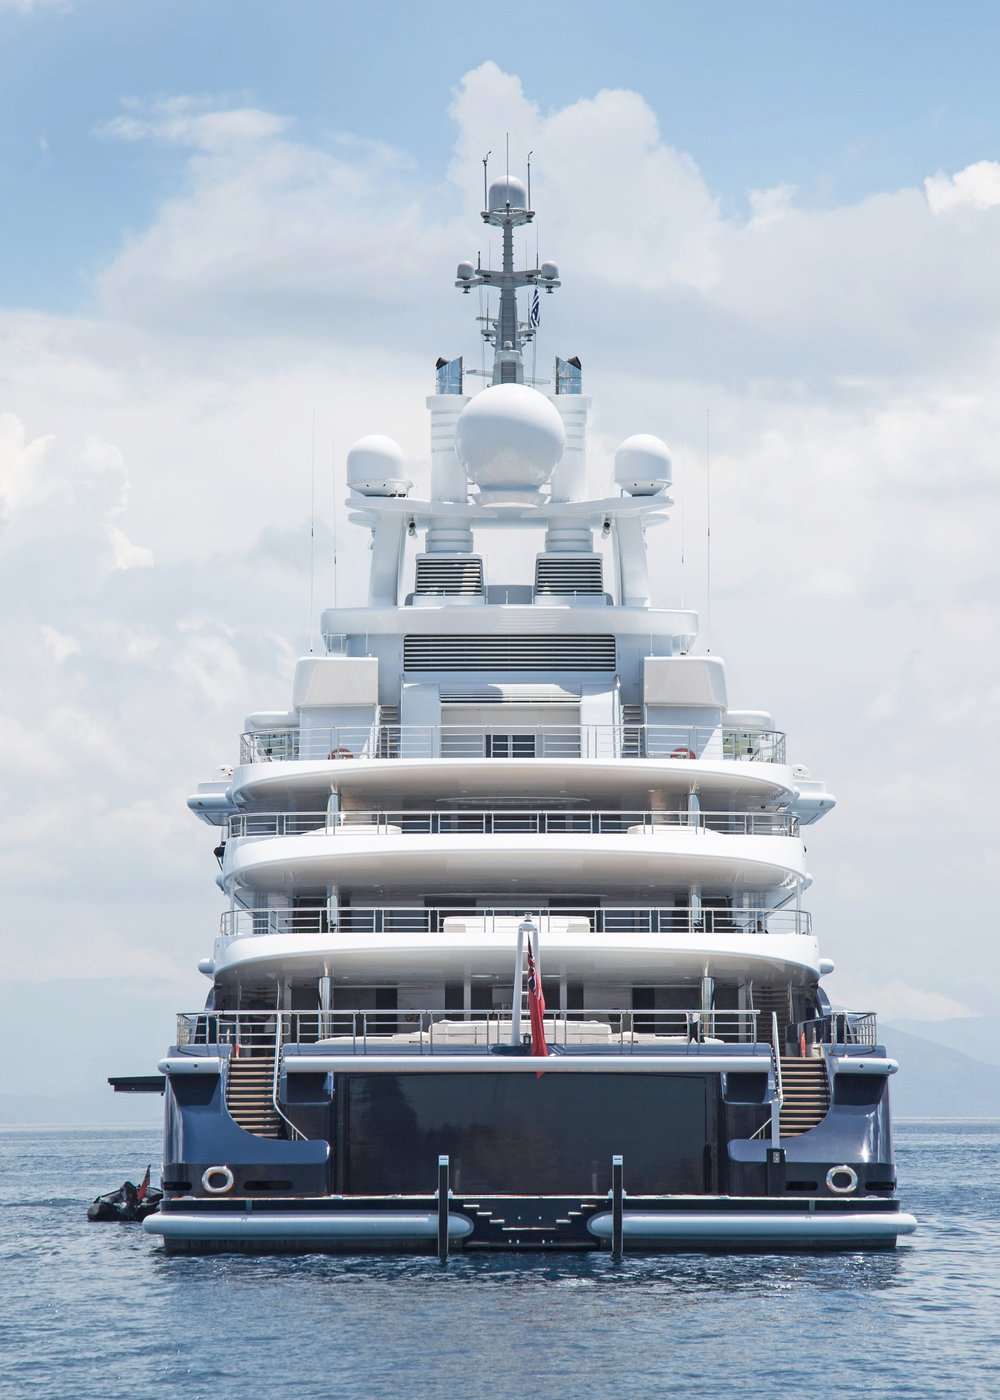 Brookes Bell can help you.We…. - Enhance your Superyacht's design & performanceRealise innovations on your yachtEnsure your Superyacht adheres to safety standardsFuture-proof your SuperyachtGive expert & impartial adviceMitigate incidentsInvestigate the incident or represent you should one occurLiaise or work alongside third parties as requiredHave the right skills, software & knowledge for the taskSave unnecessary stressAssess & review specificationsLiaise with shipyards & provide plan approvalAre experienced in arbitration & litigation up to High Court